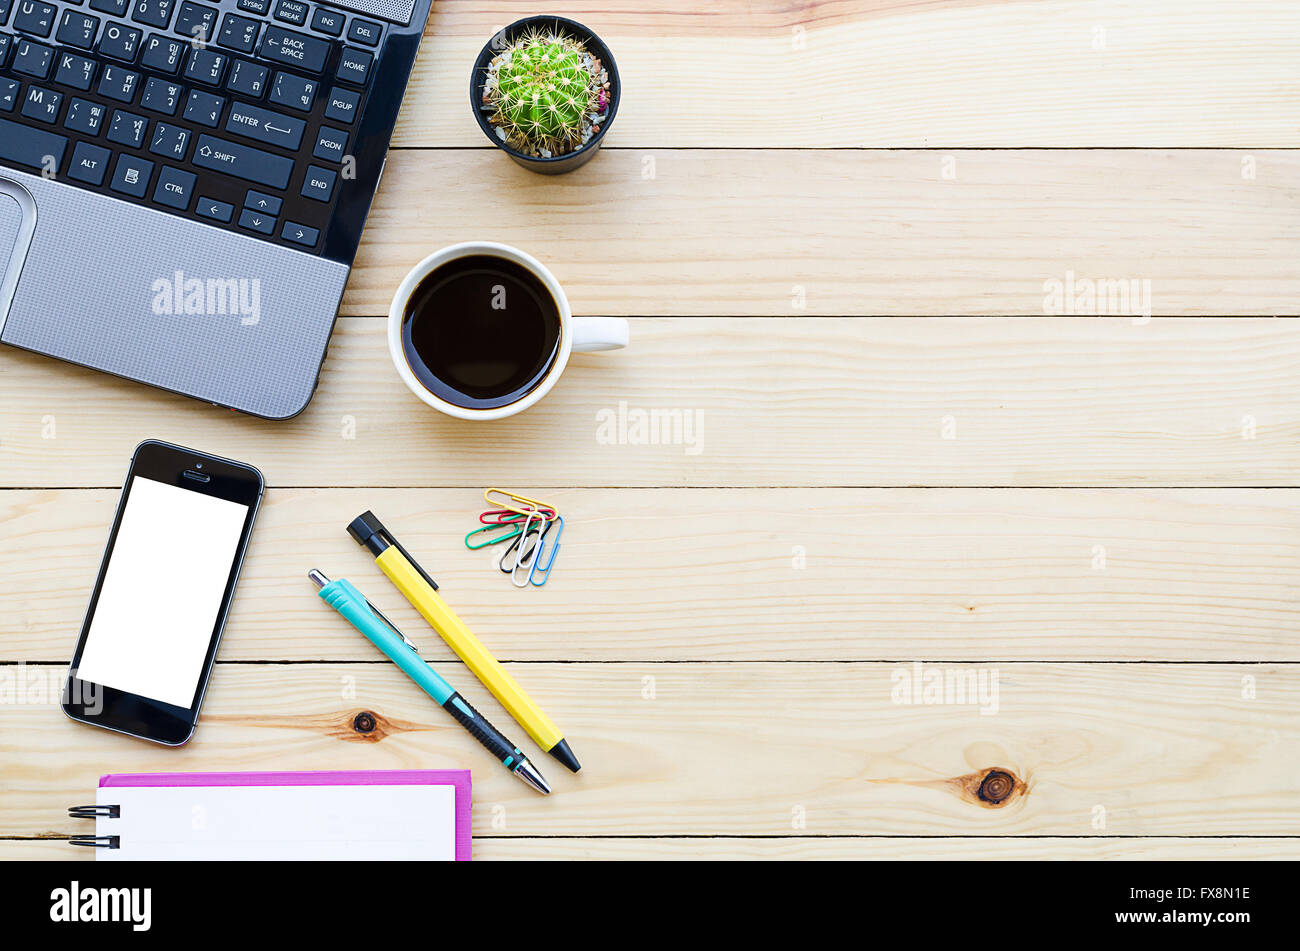 Office Desk Table With Laptop Smartphone Coffee Cup Pen